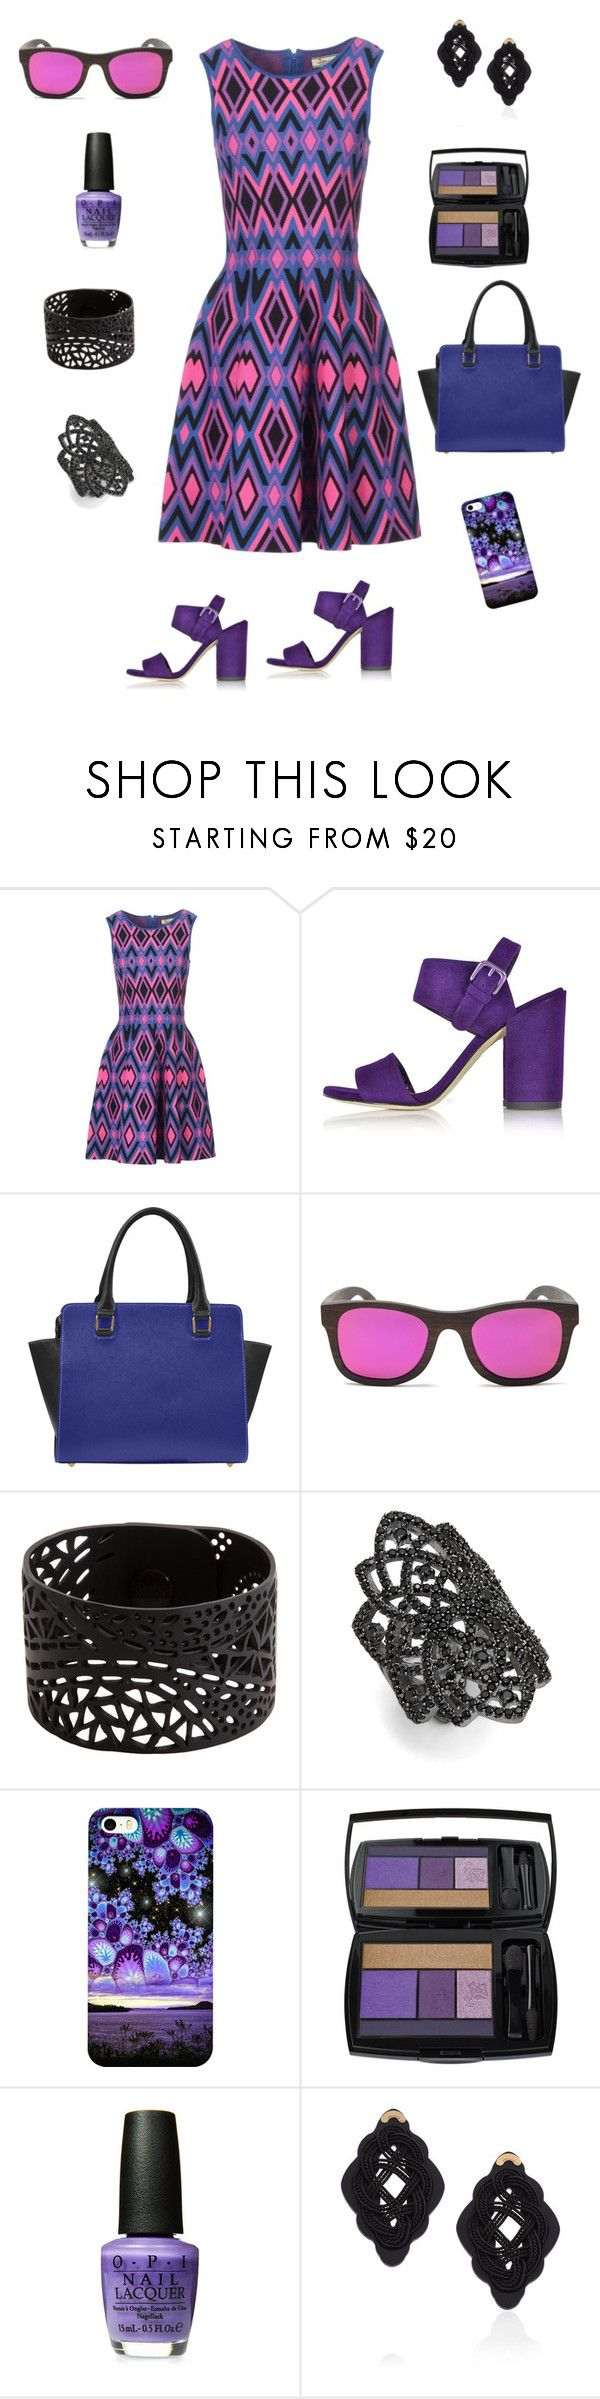 """""""Sunday Sophistication"""" by kimberly-koch ❤ liked on Polyvore featuring Issa, Finlay & Co., nOir, Lancôme and Anna e Alex"""